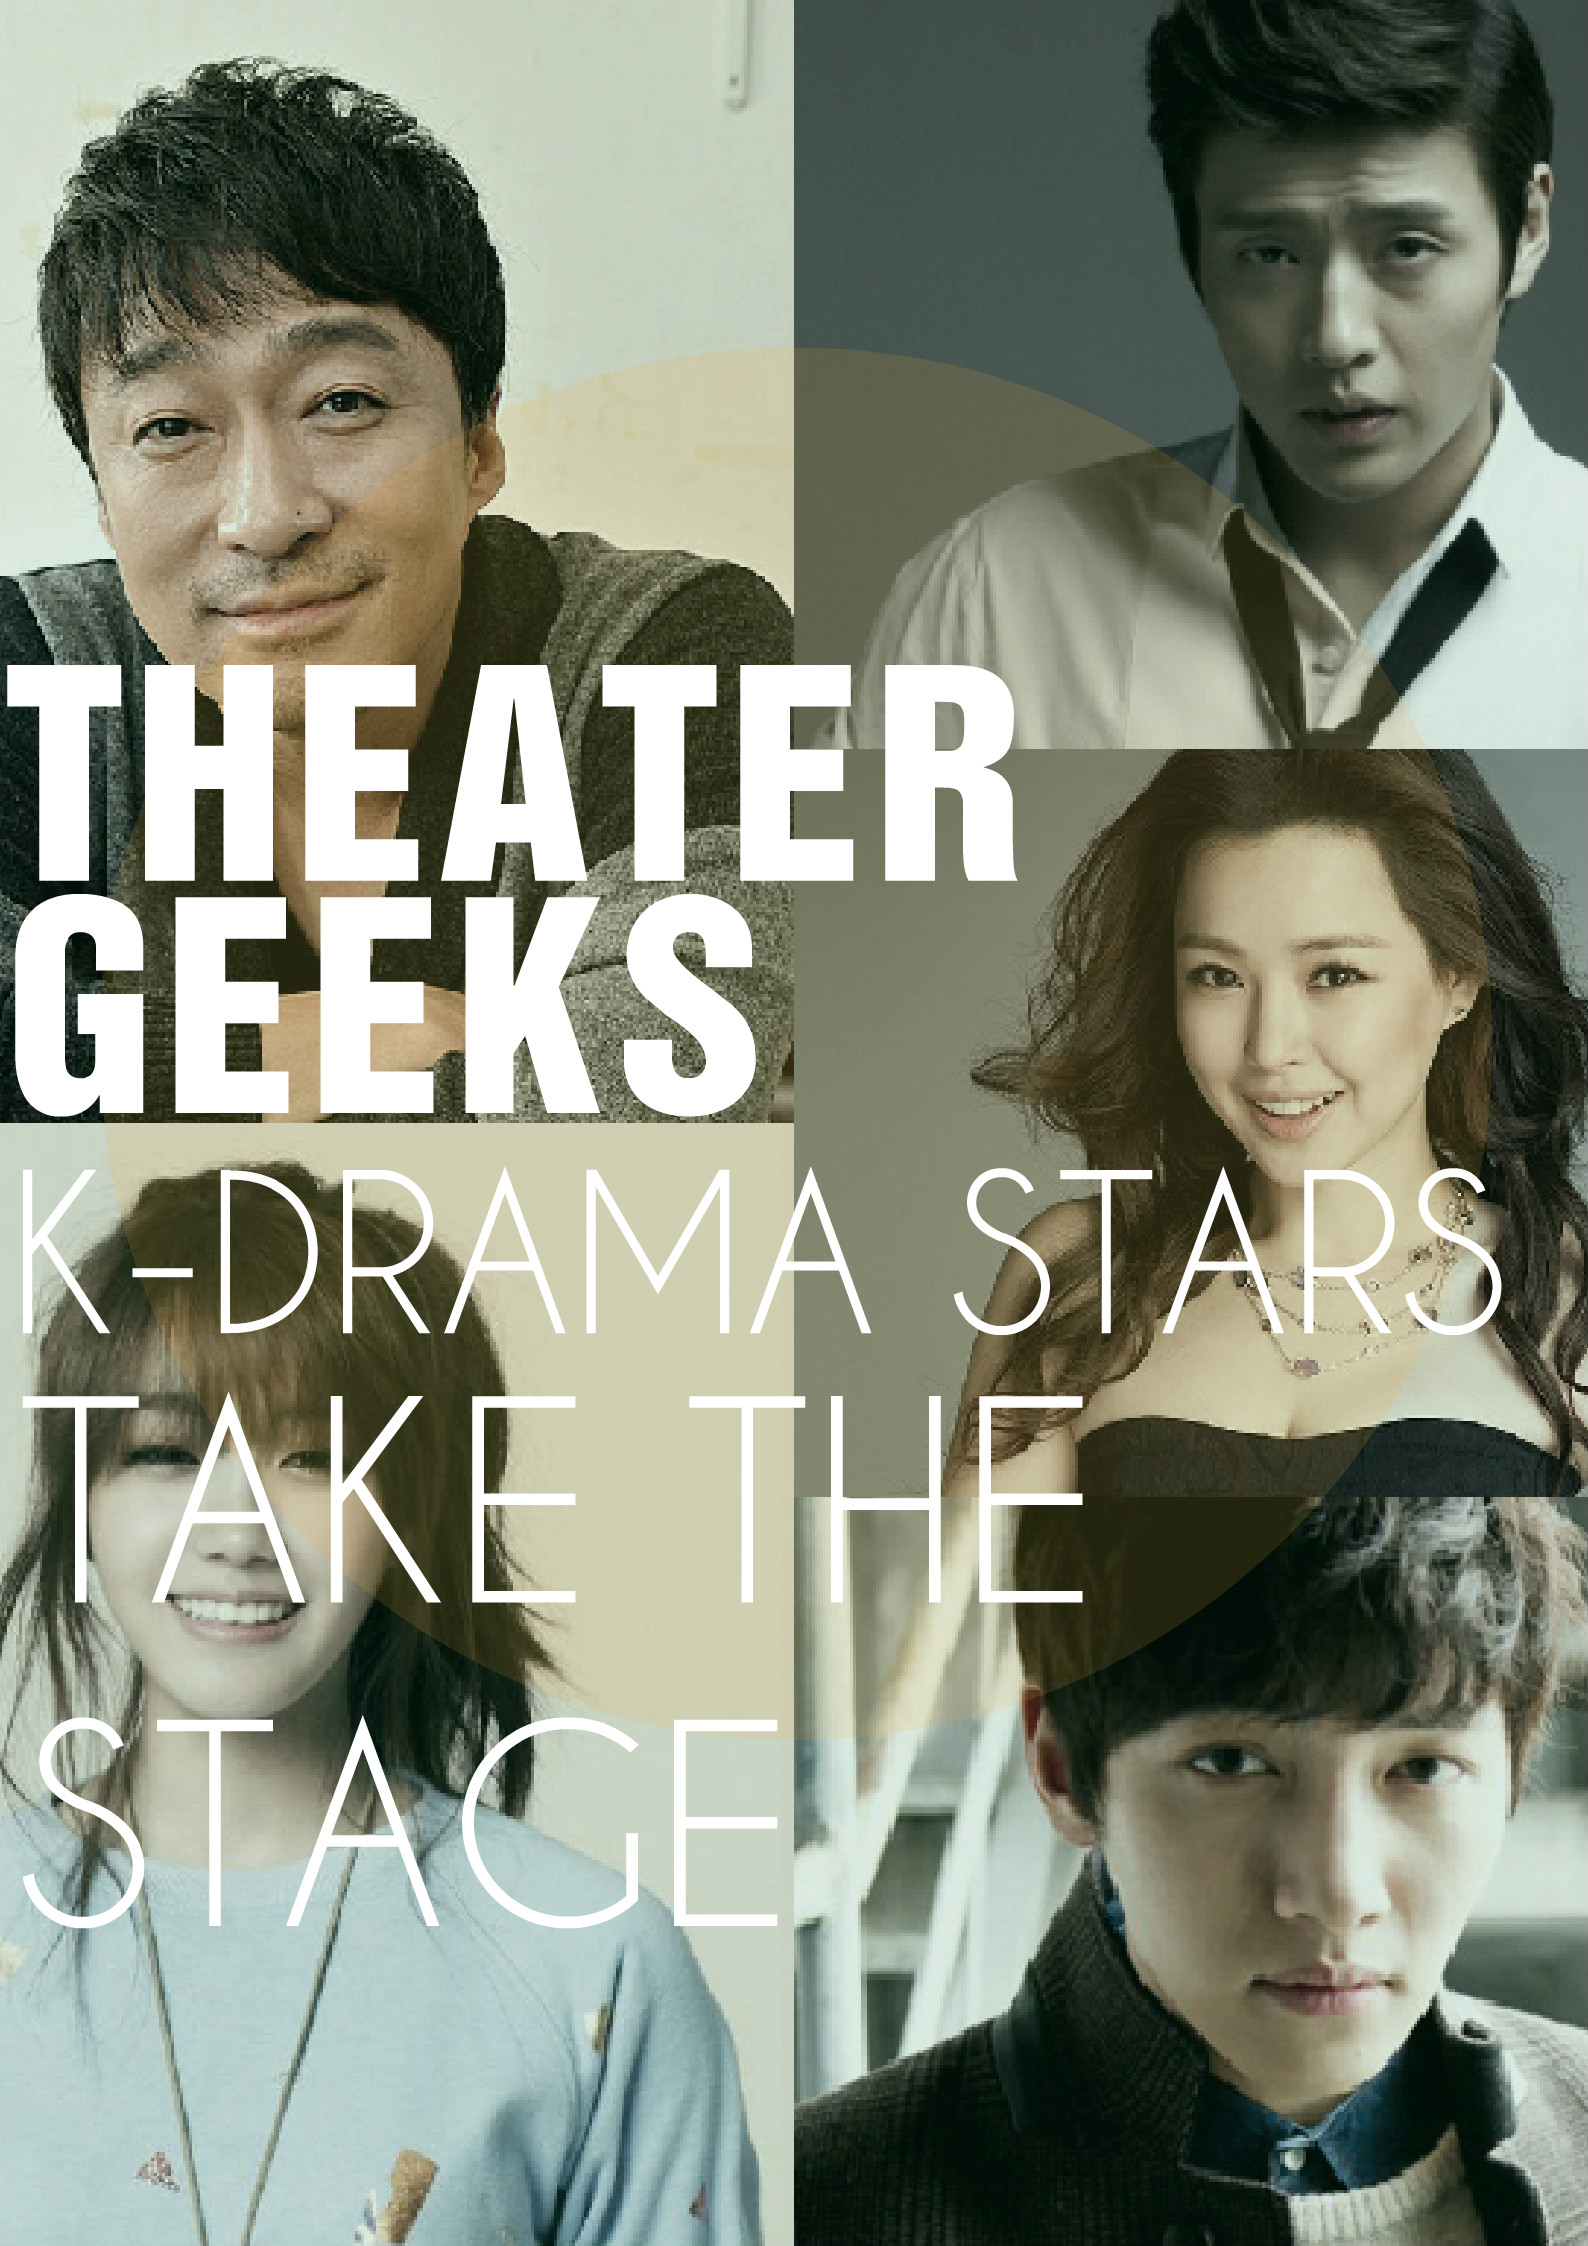 take 3 featured theater geeks